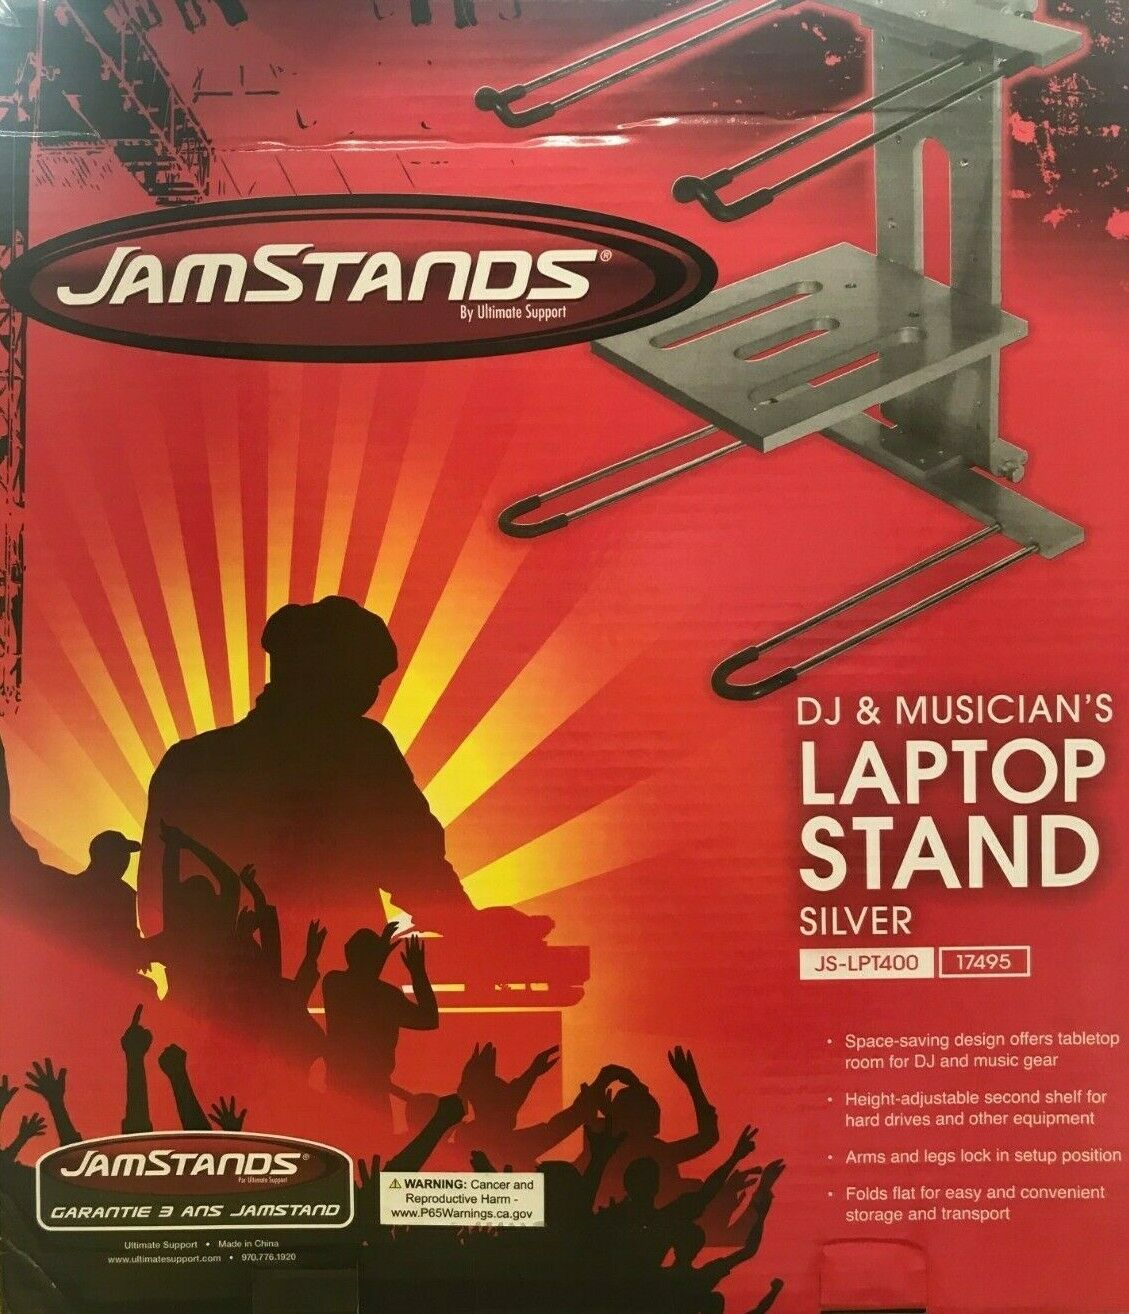 Primary image for Ultimate Support - JS-LPT400 - Laptop/DJ Stand with Stand Alone Base